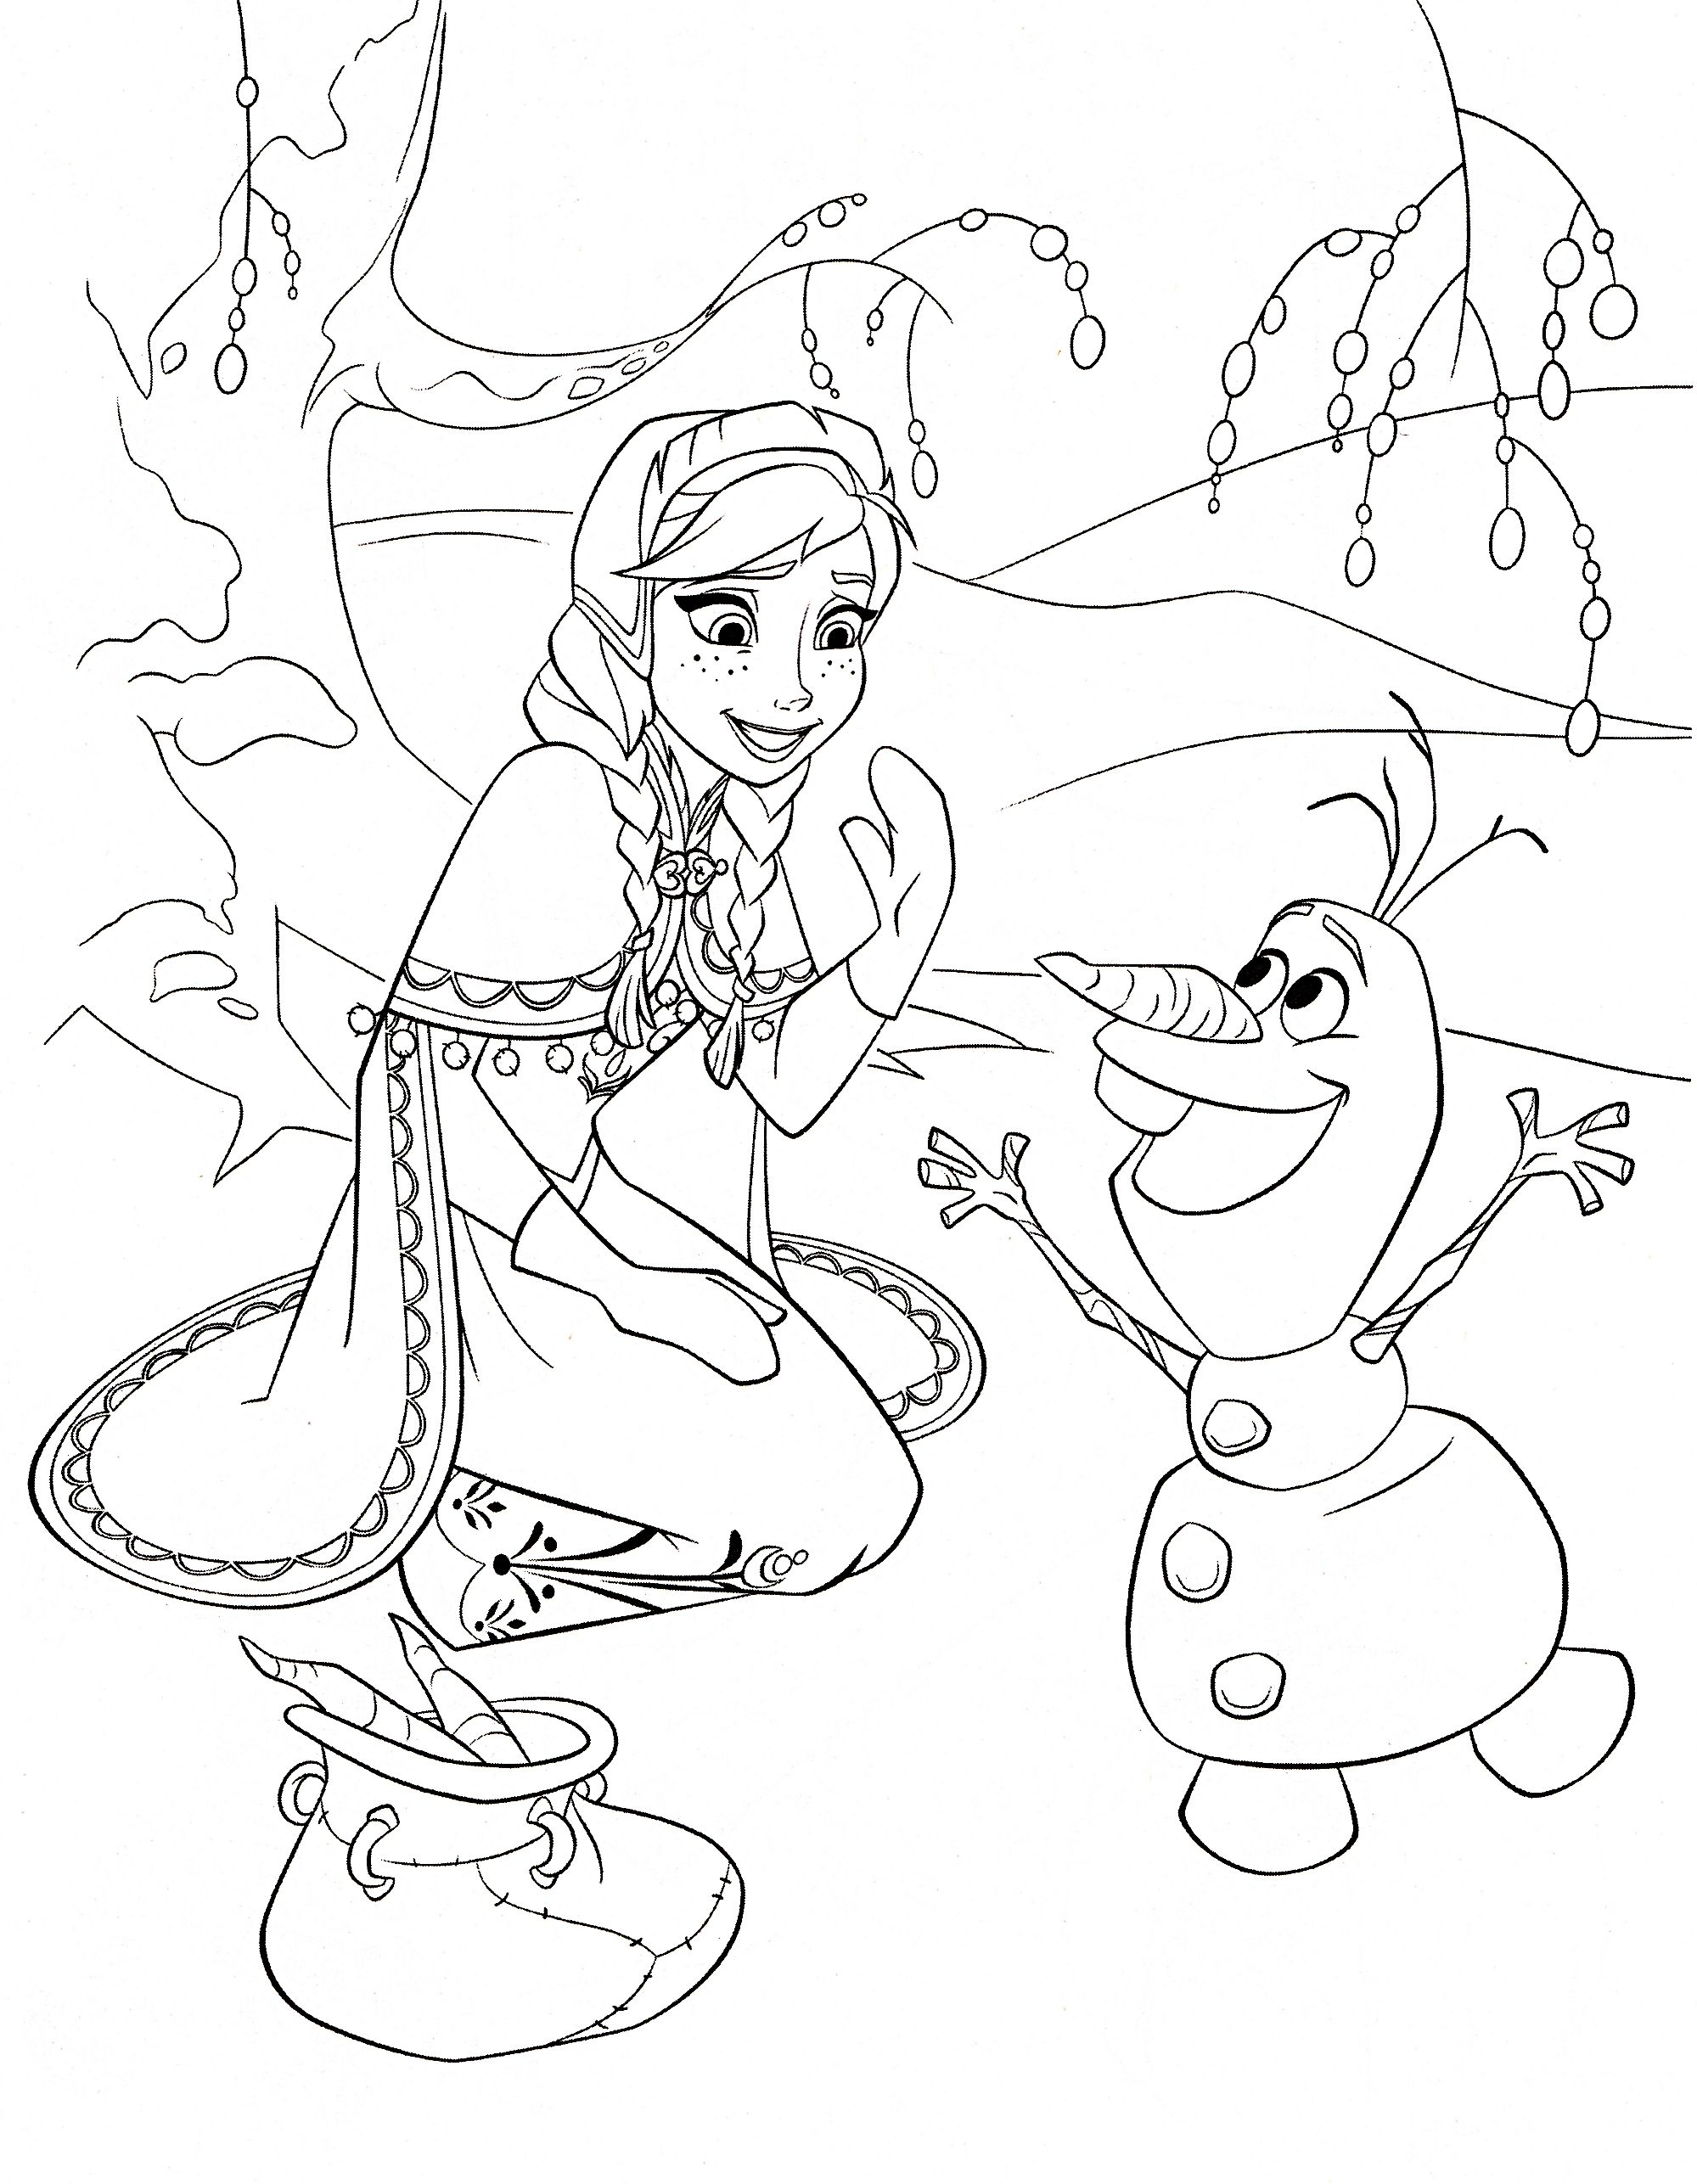 Frozen printable coloring book - Free Frozen Printable Coloring Activity Pages Plus Free Computer Games